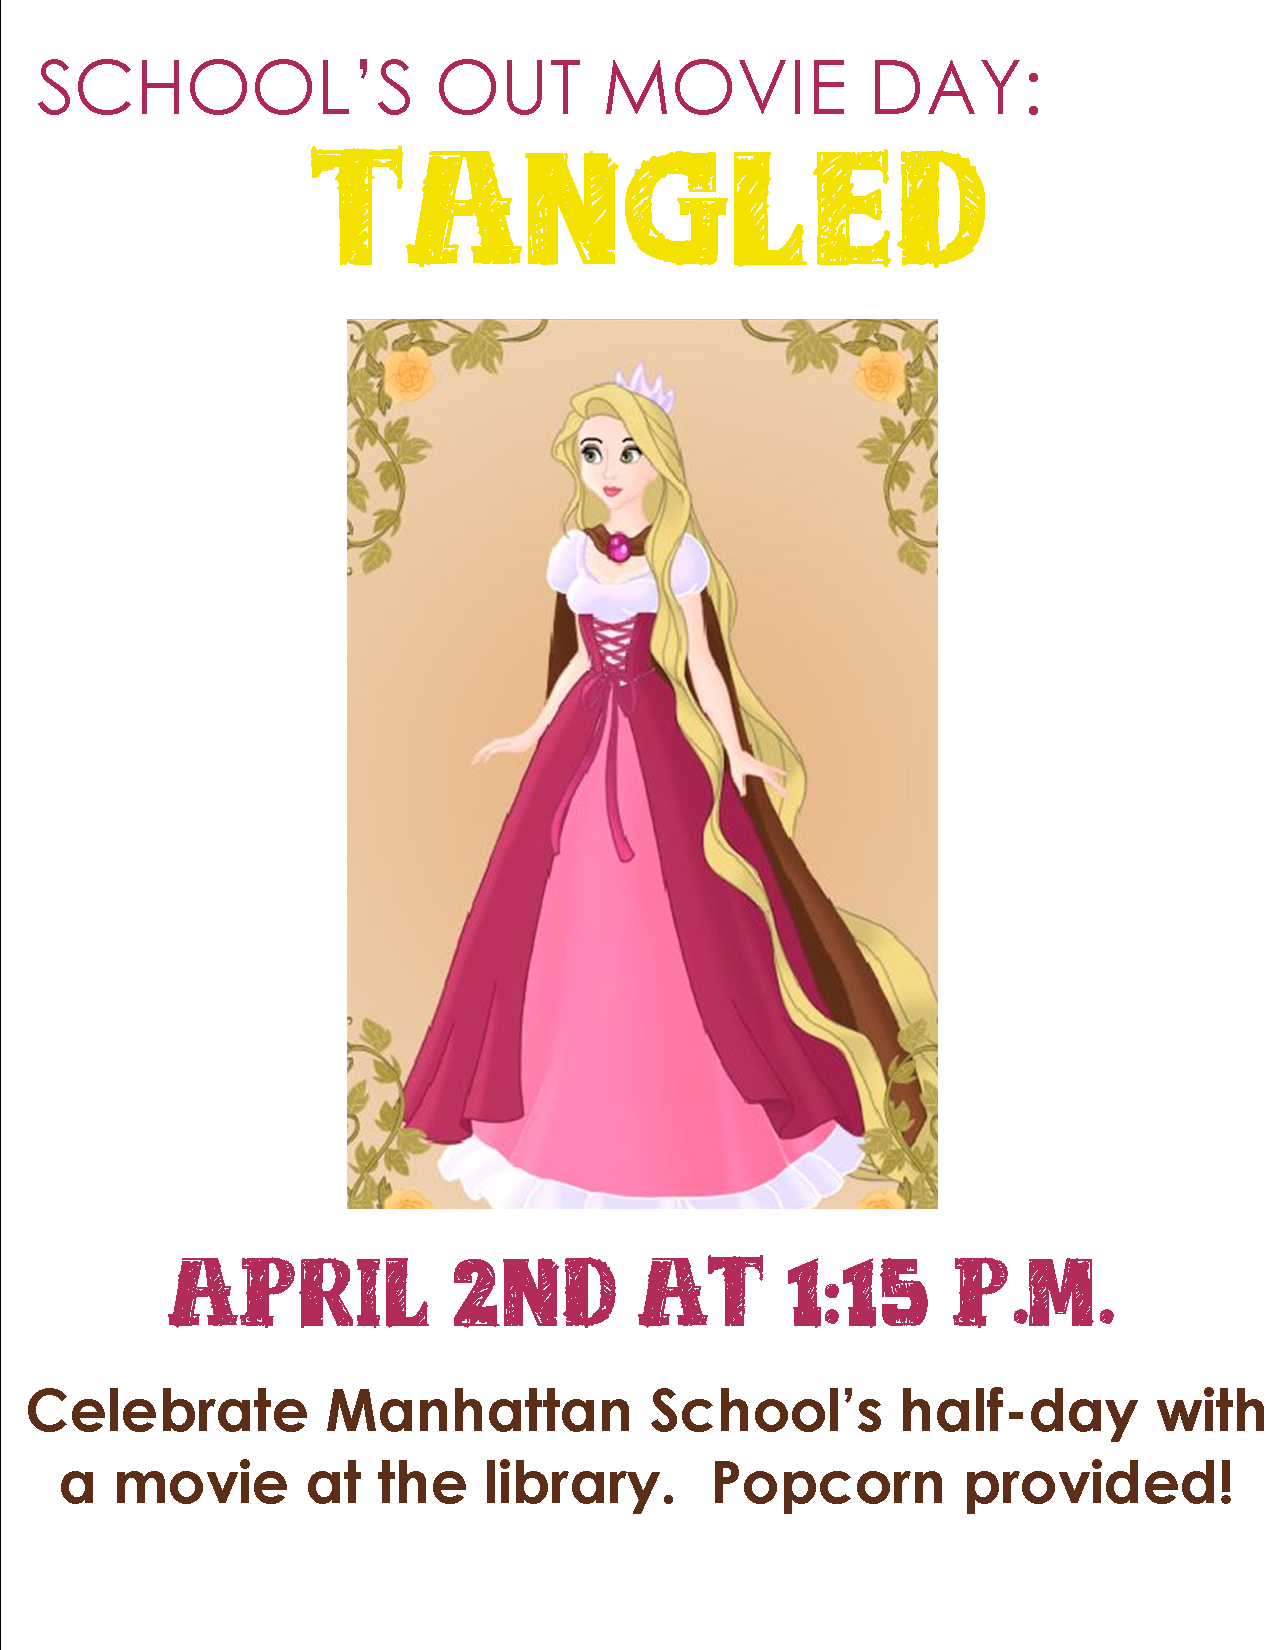 School's Out Movie Day: Tangled